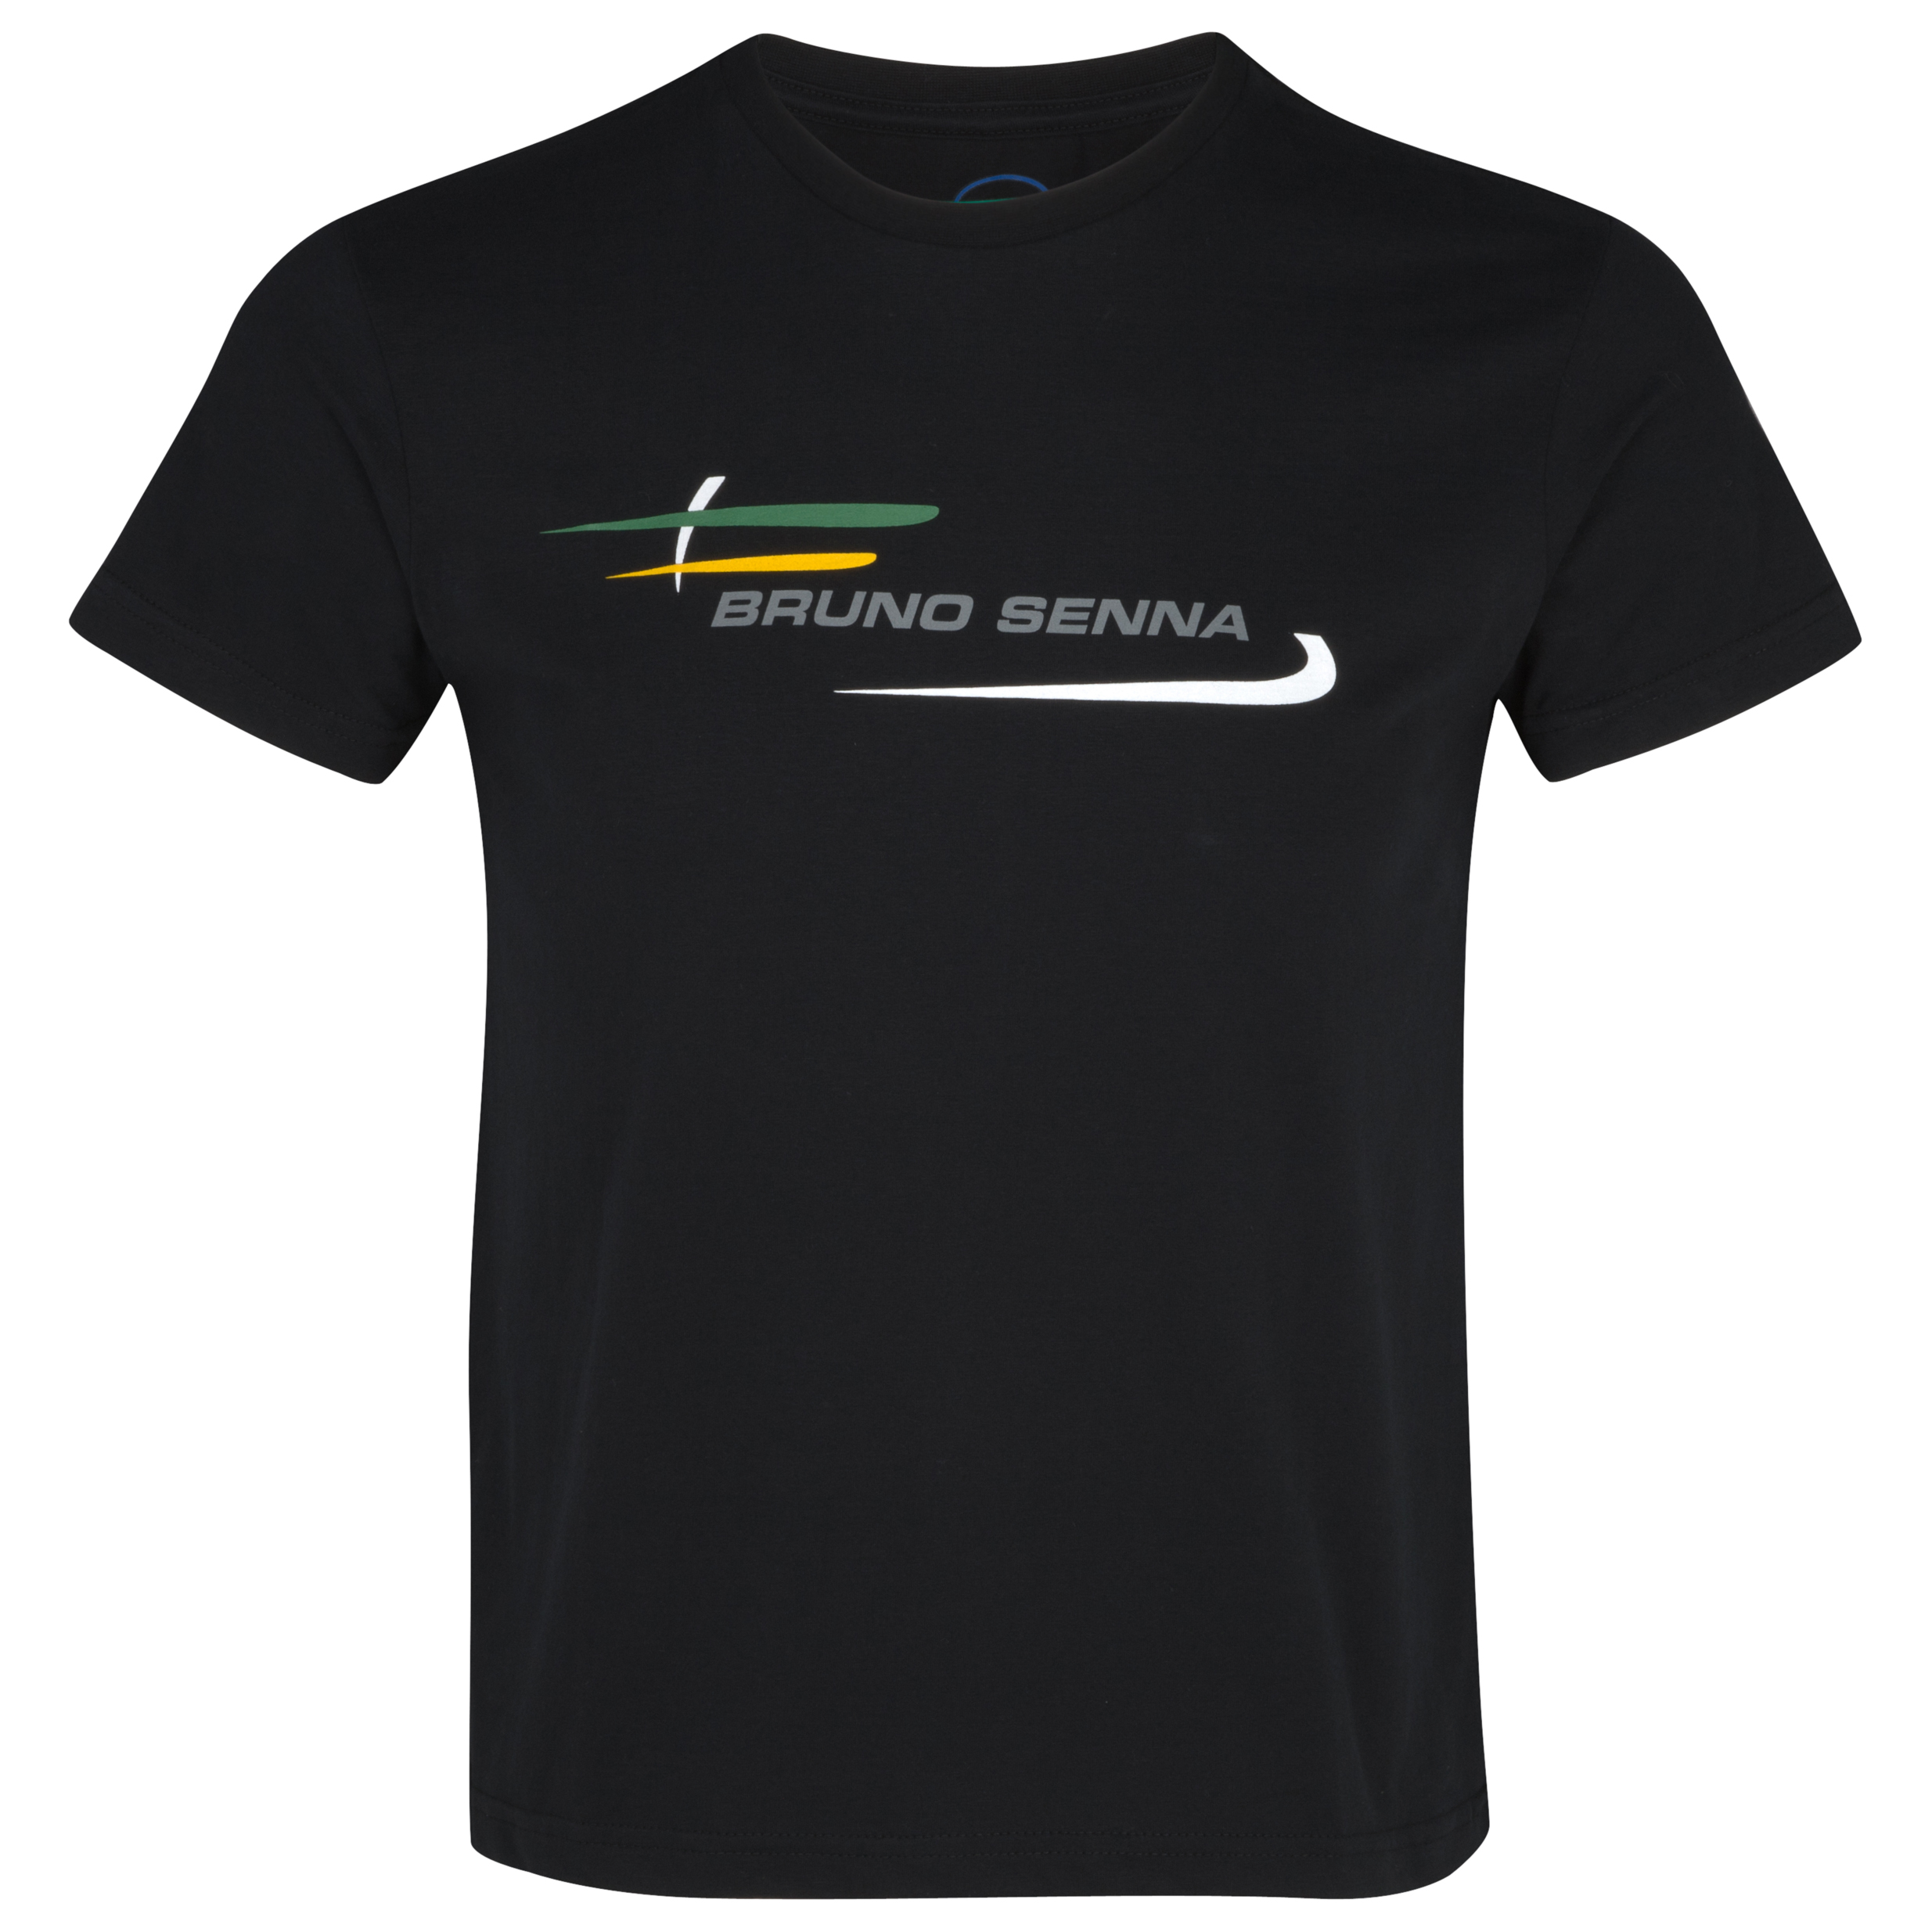 Bruno Senna Logo T-Shirt - Black